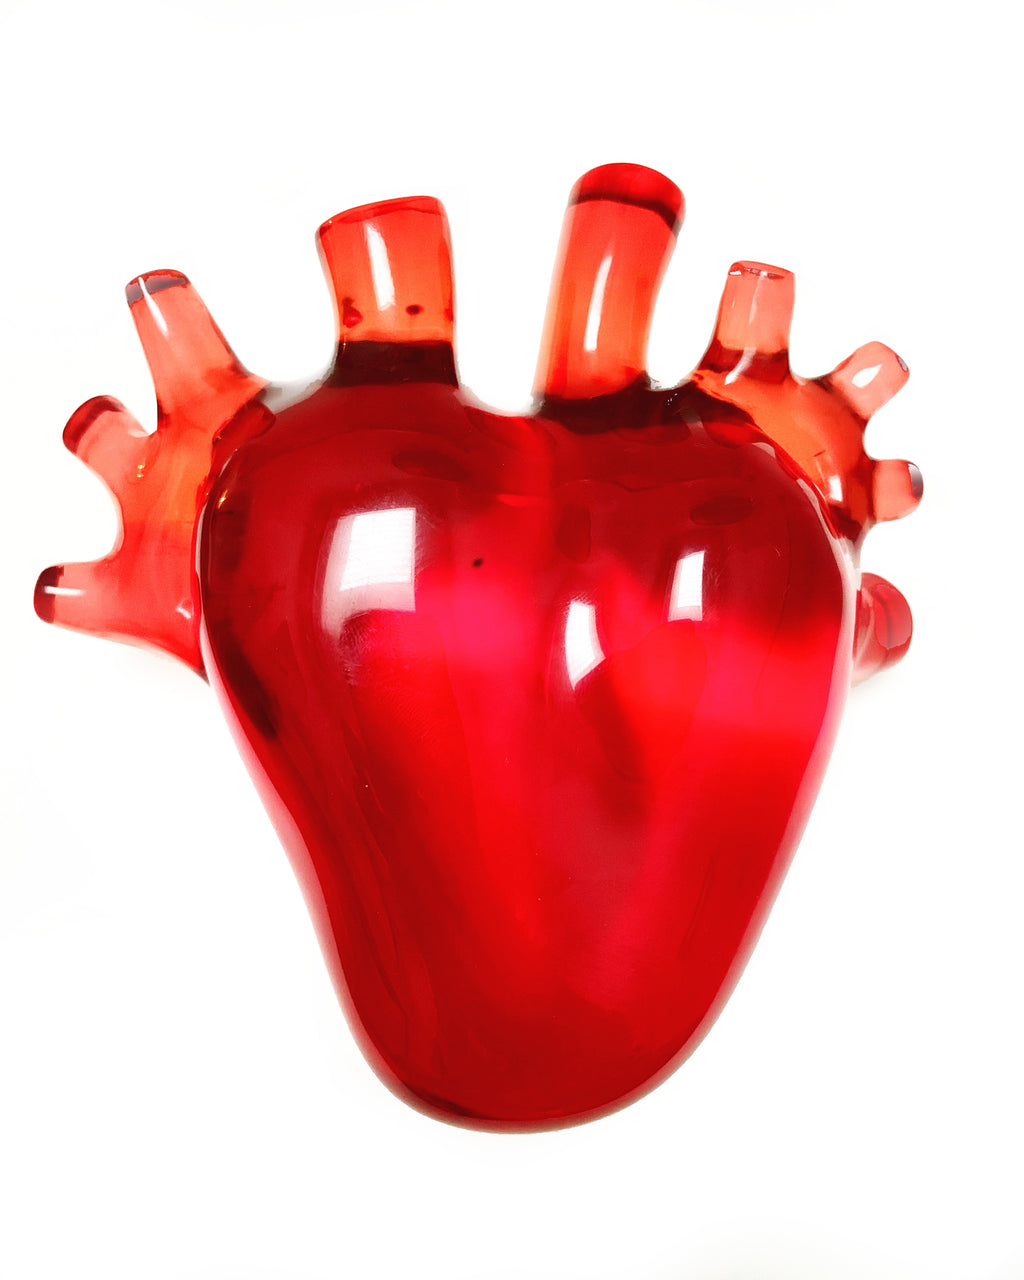 Red Corazón Resin Sculpture